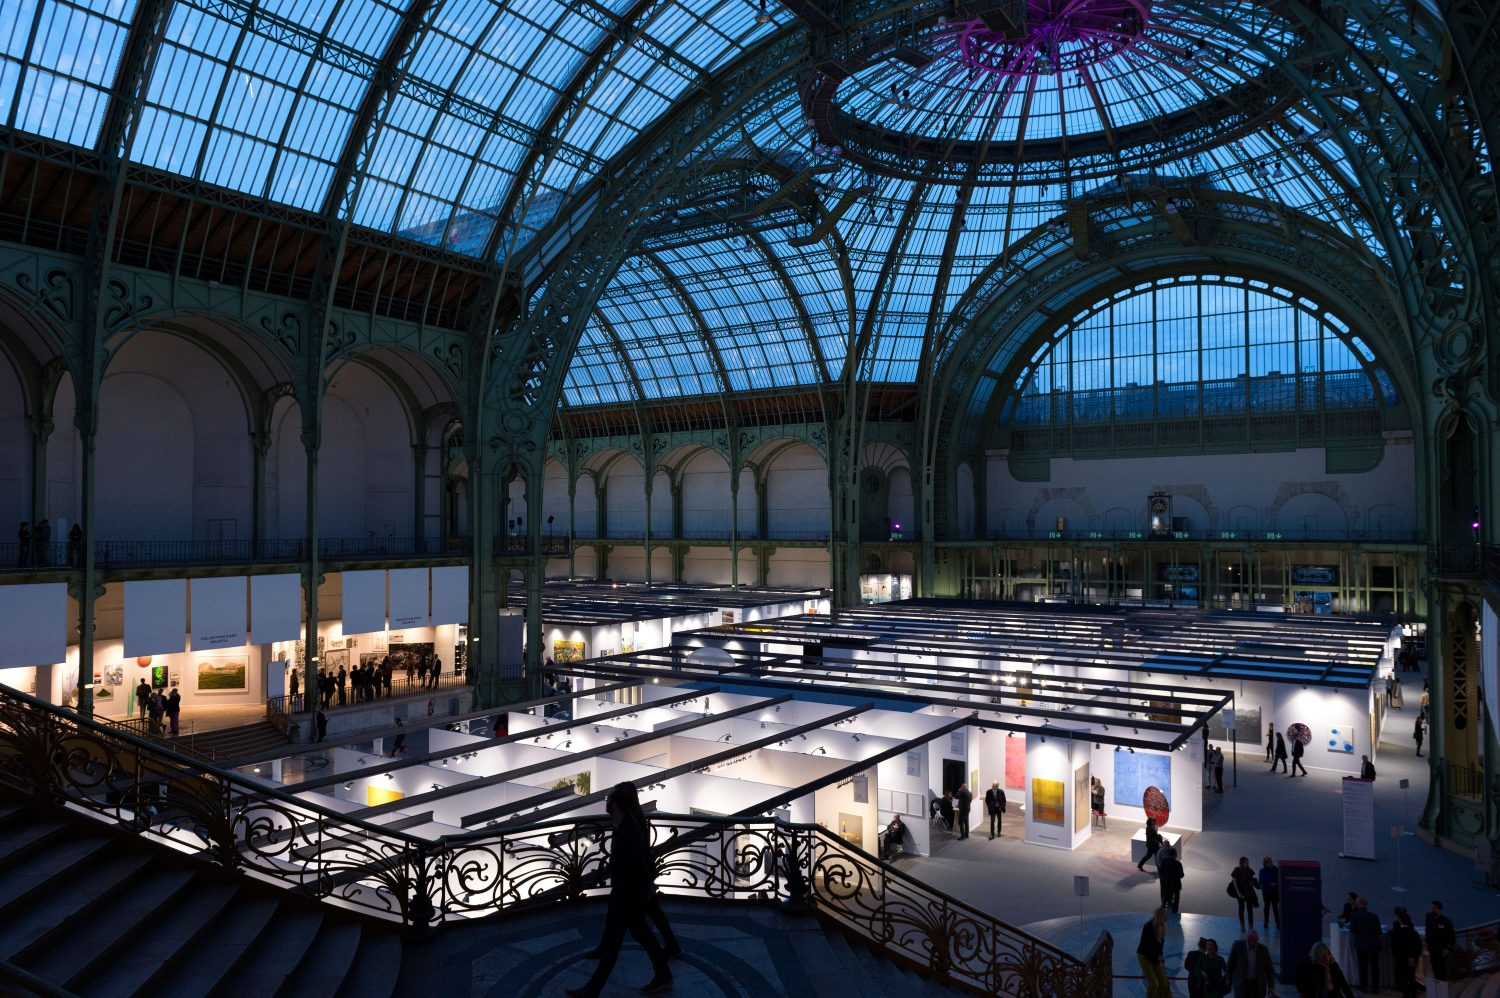 grand palais of Art Paris 2019 Event Guide art paris 2019 event guide ART PARIS 2019 EVENT GUIDE art paris